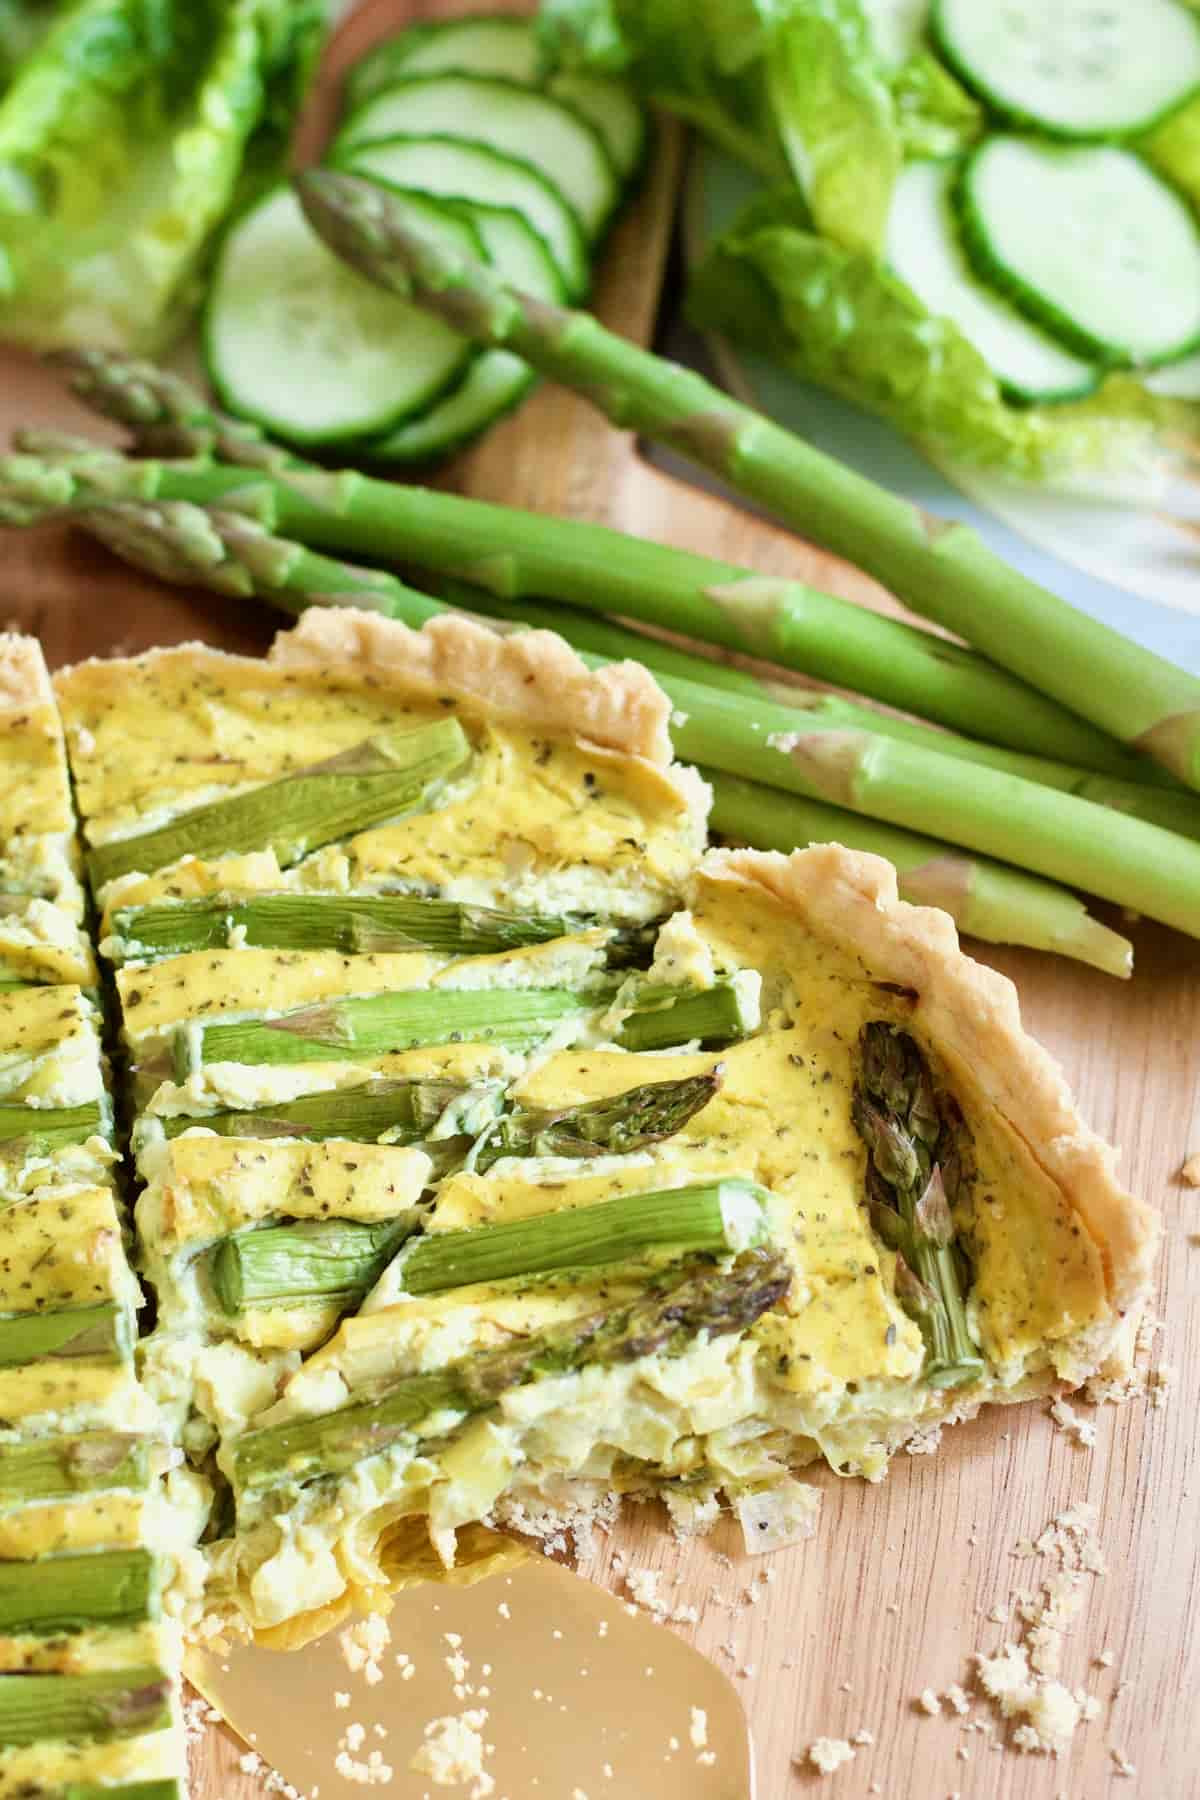 Two slices of vegan quiche on a board.